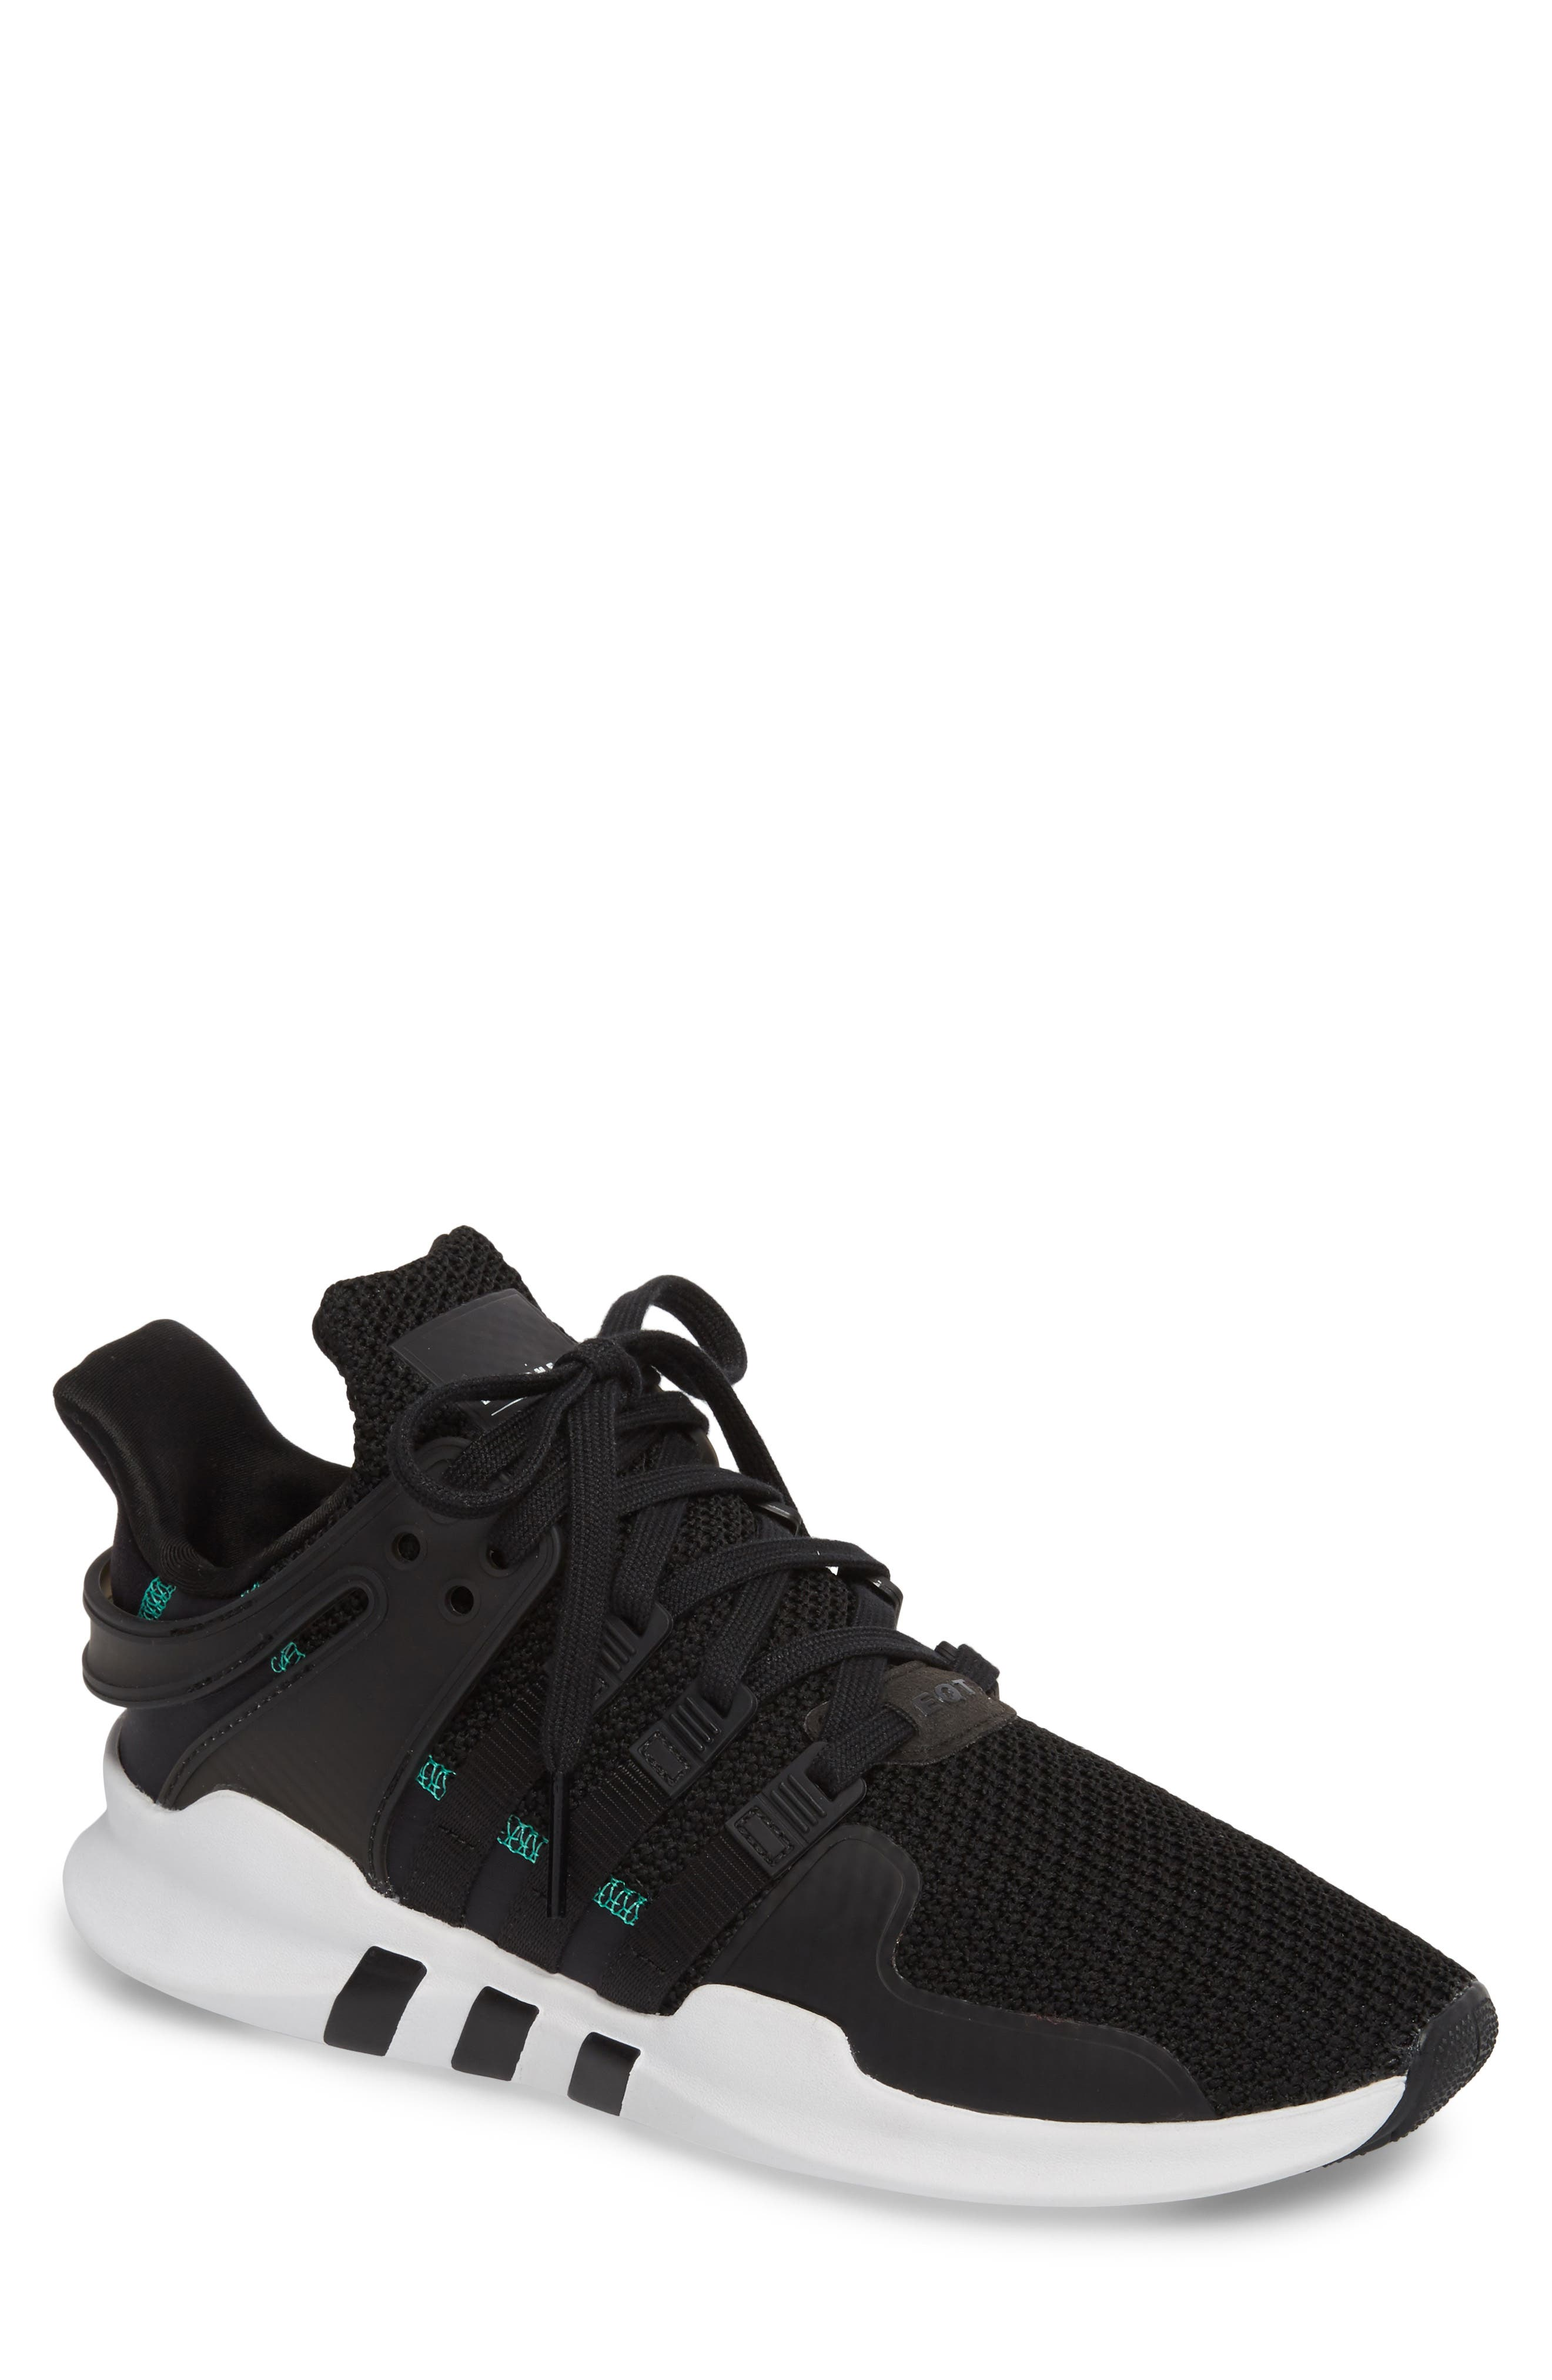 new adidas shoes eqt support future 2 /3 earring 605968